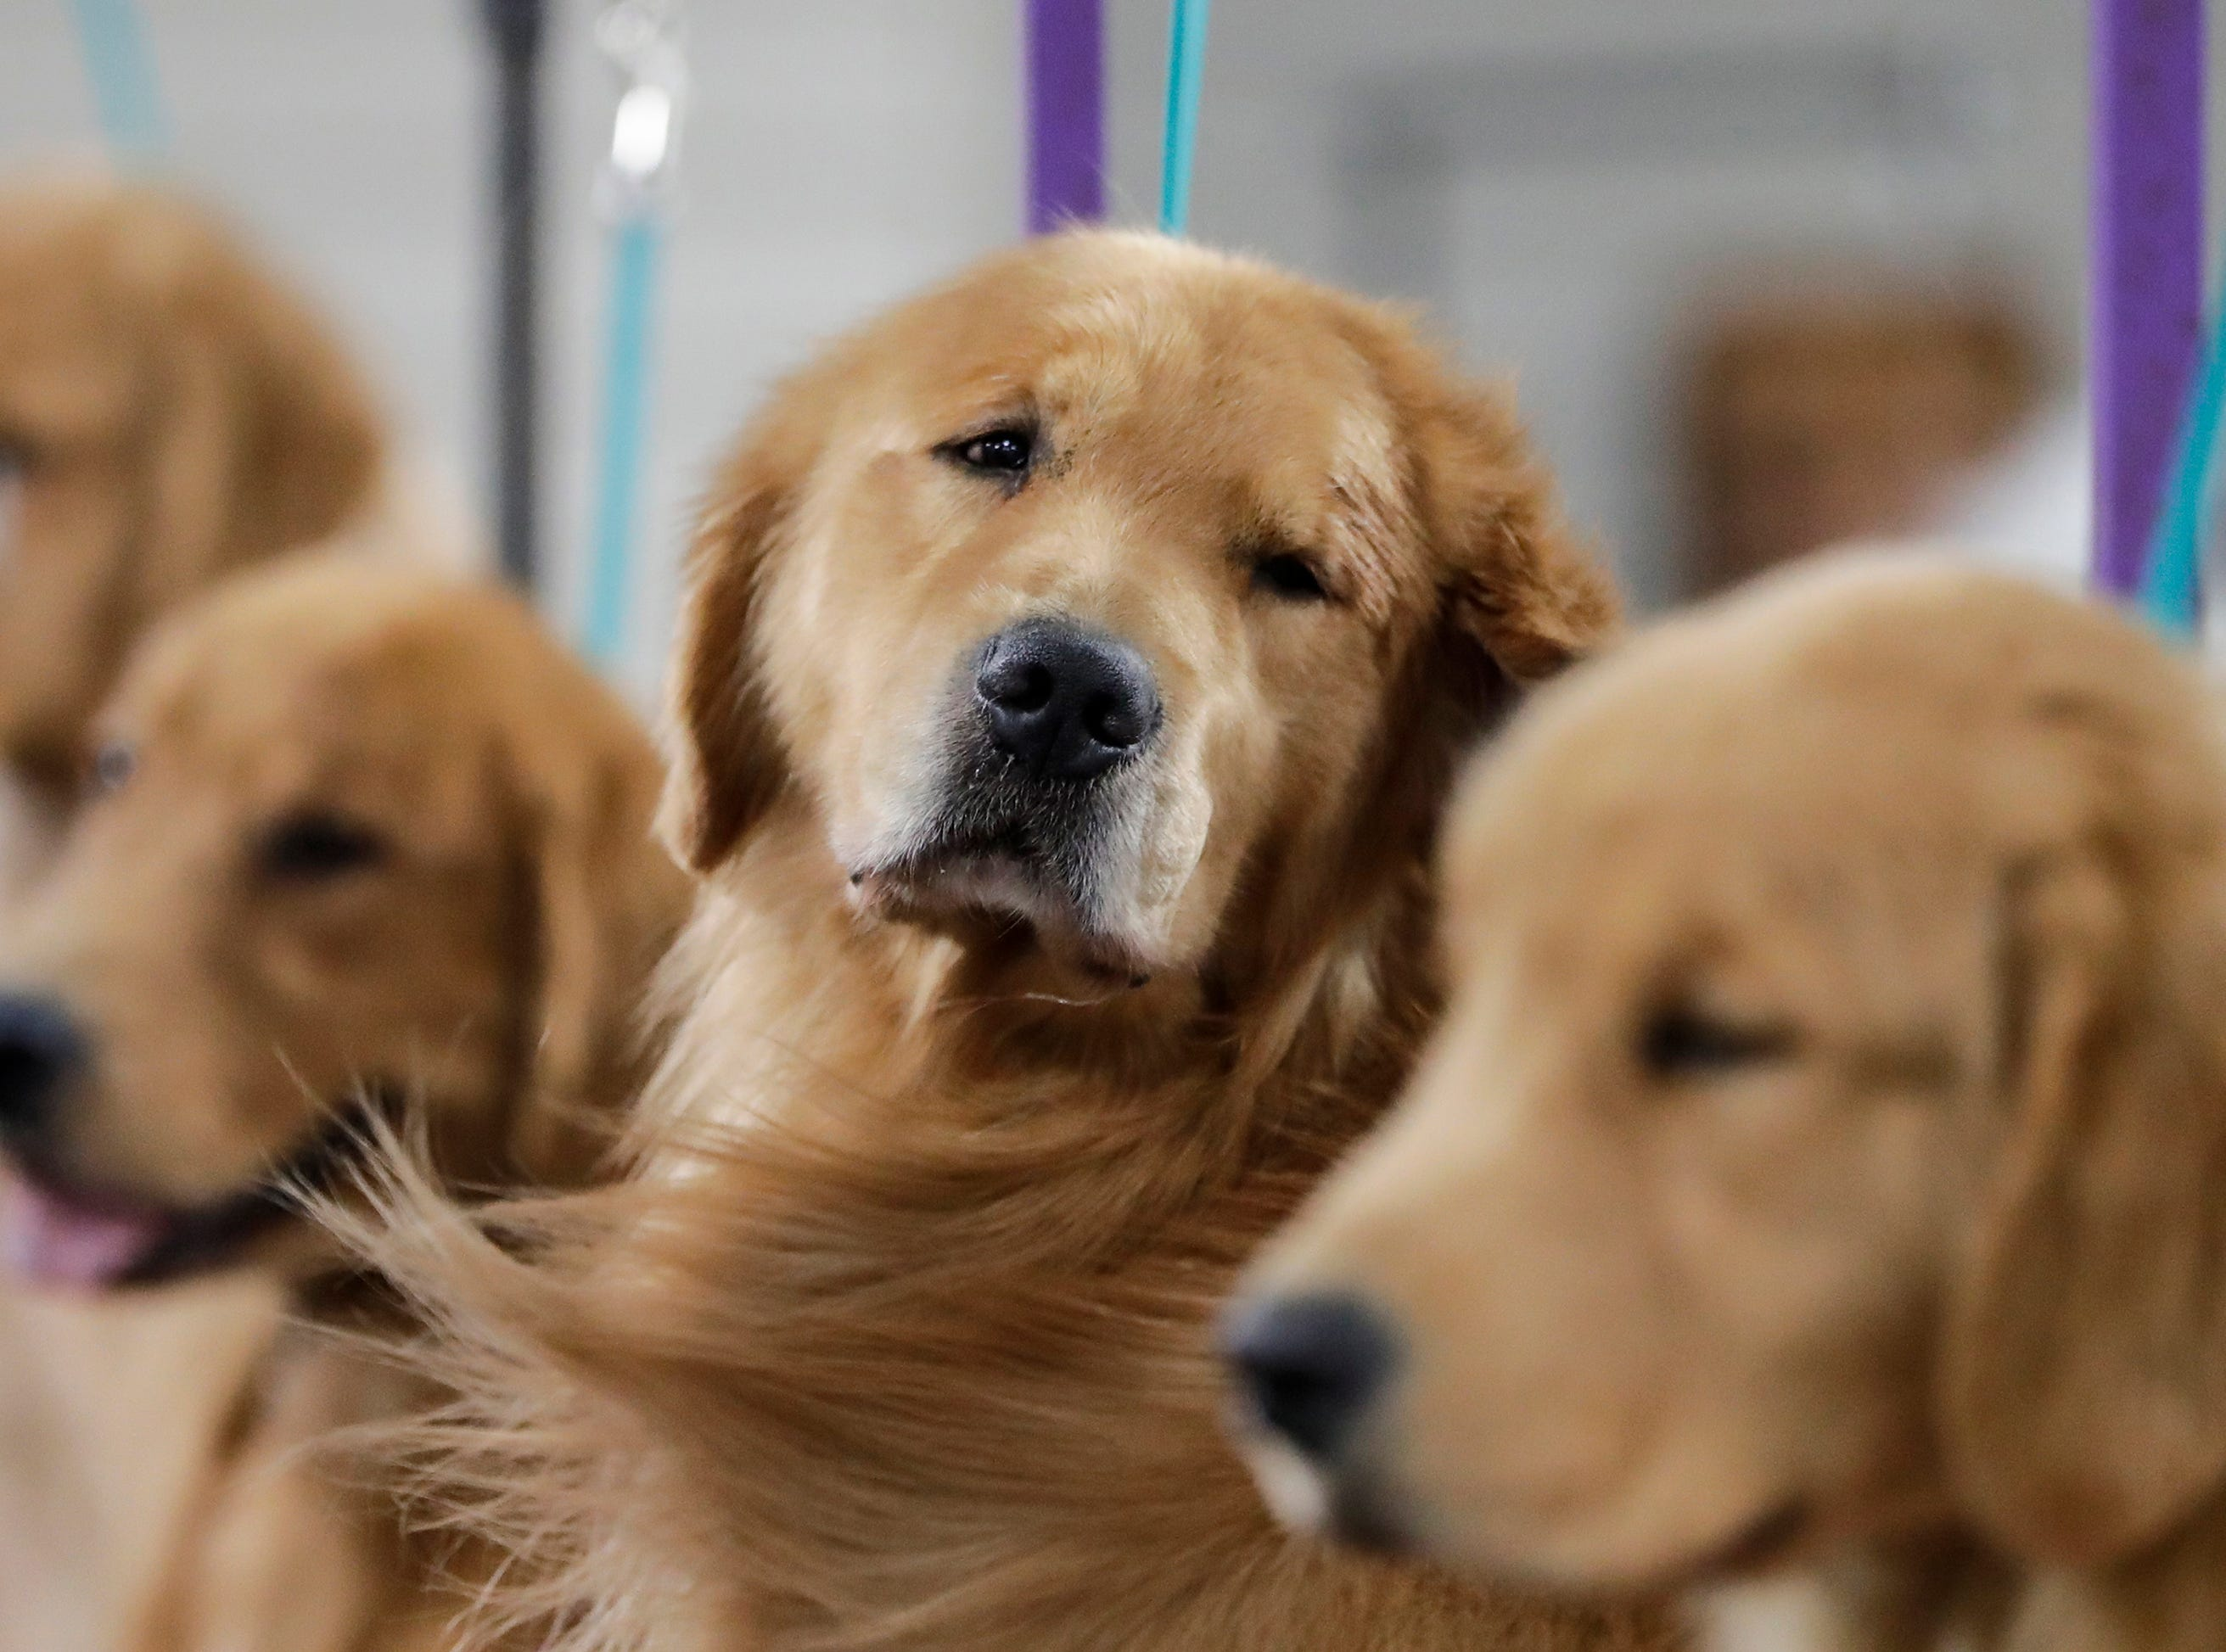 A golden retriever sits patiently for the hair dryer during the Northeast Wisconsin Dog Show Classic at the Manitowoc County Expo Center Thursday, March 28, 2019, in Manitowoc, Wis. Joshua Clark/USA TODAY NETWORK-Wisconsin